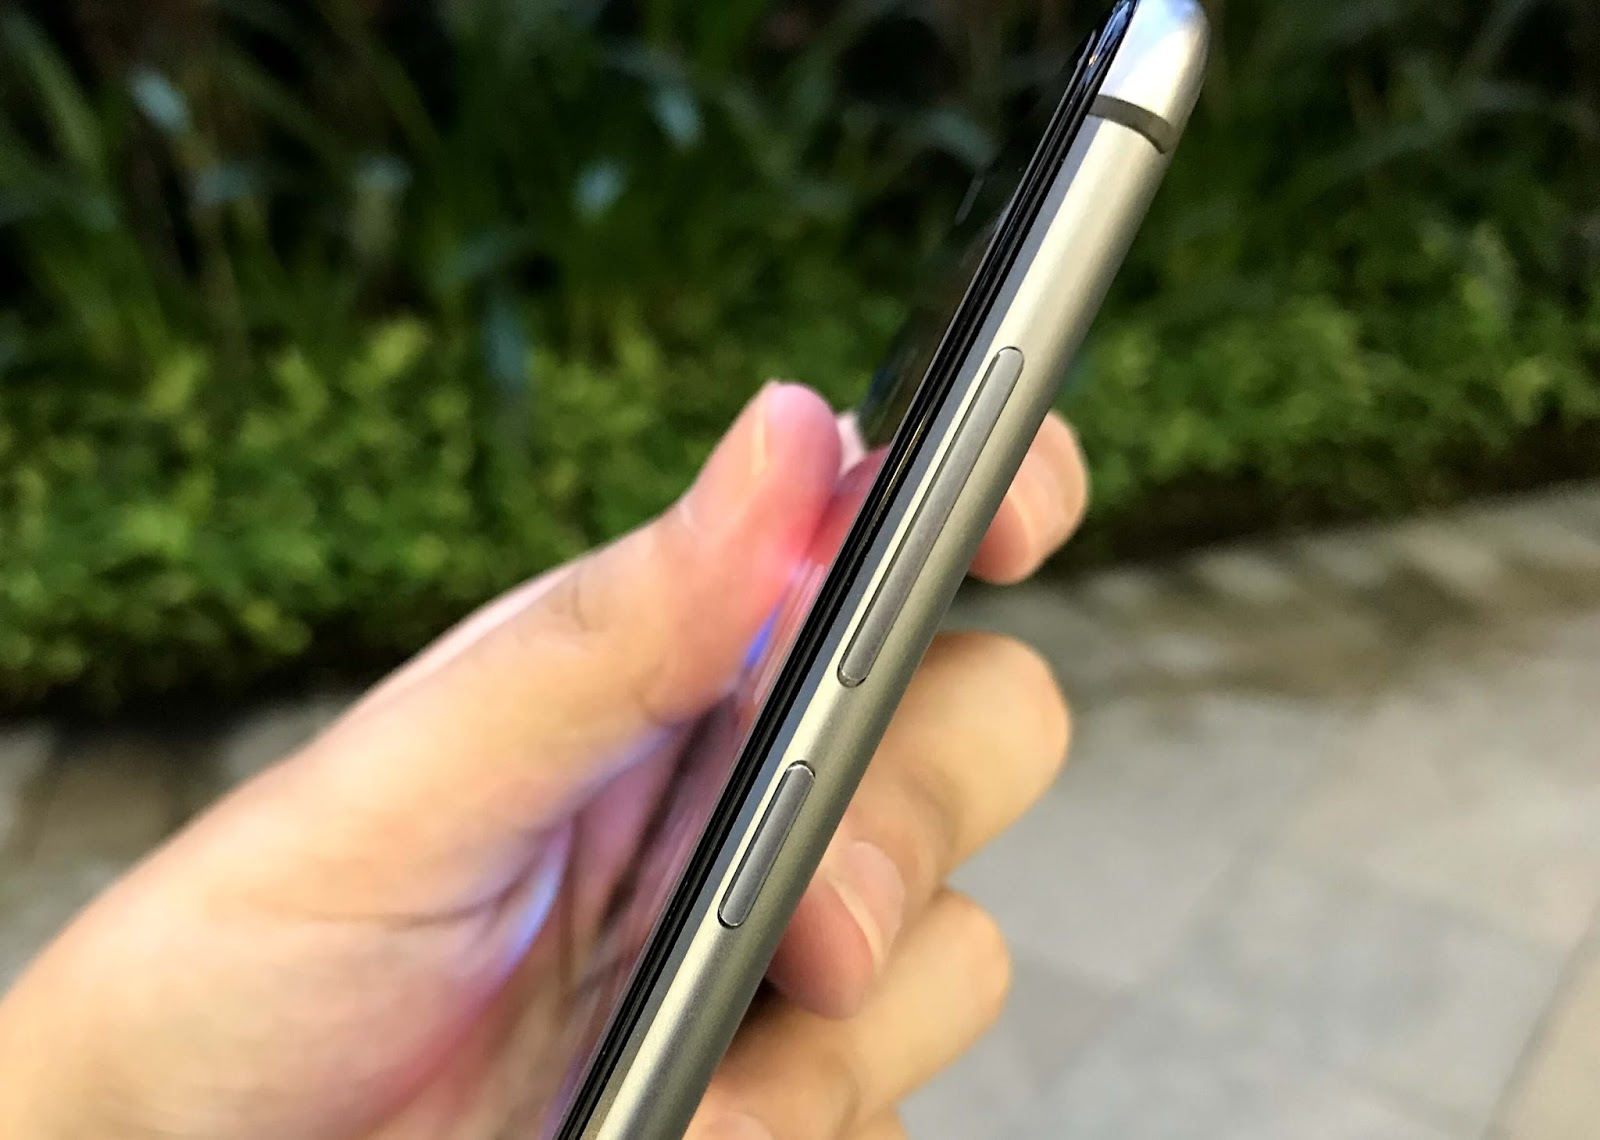 Cherry Mobile Flare S6 Selfie - Right Side